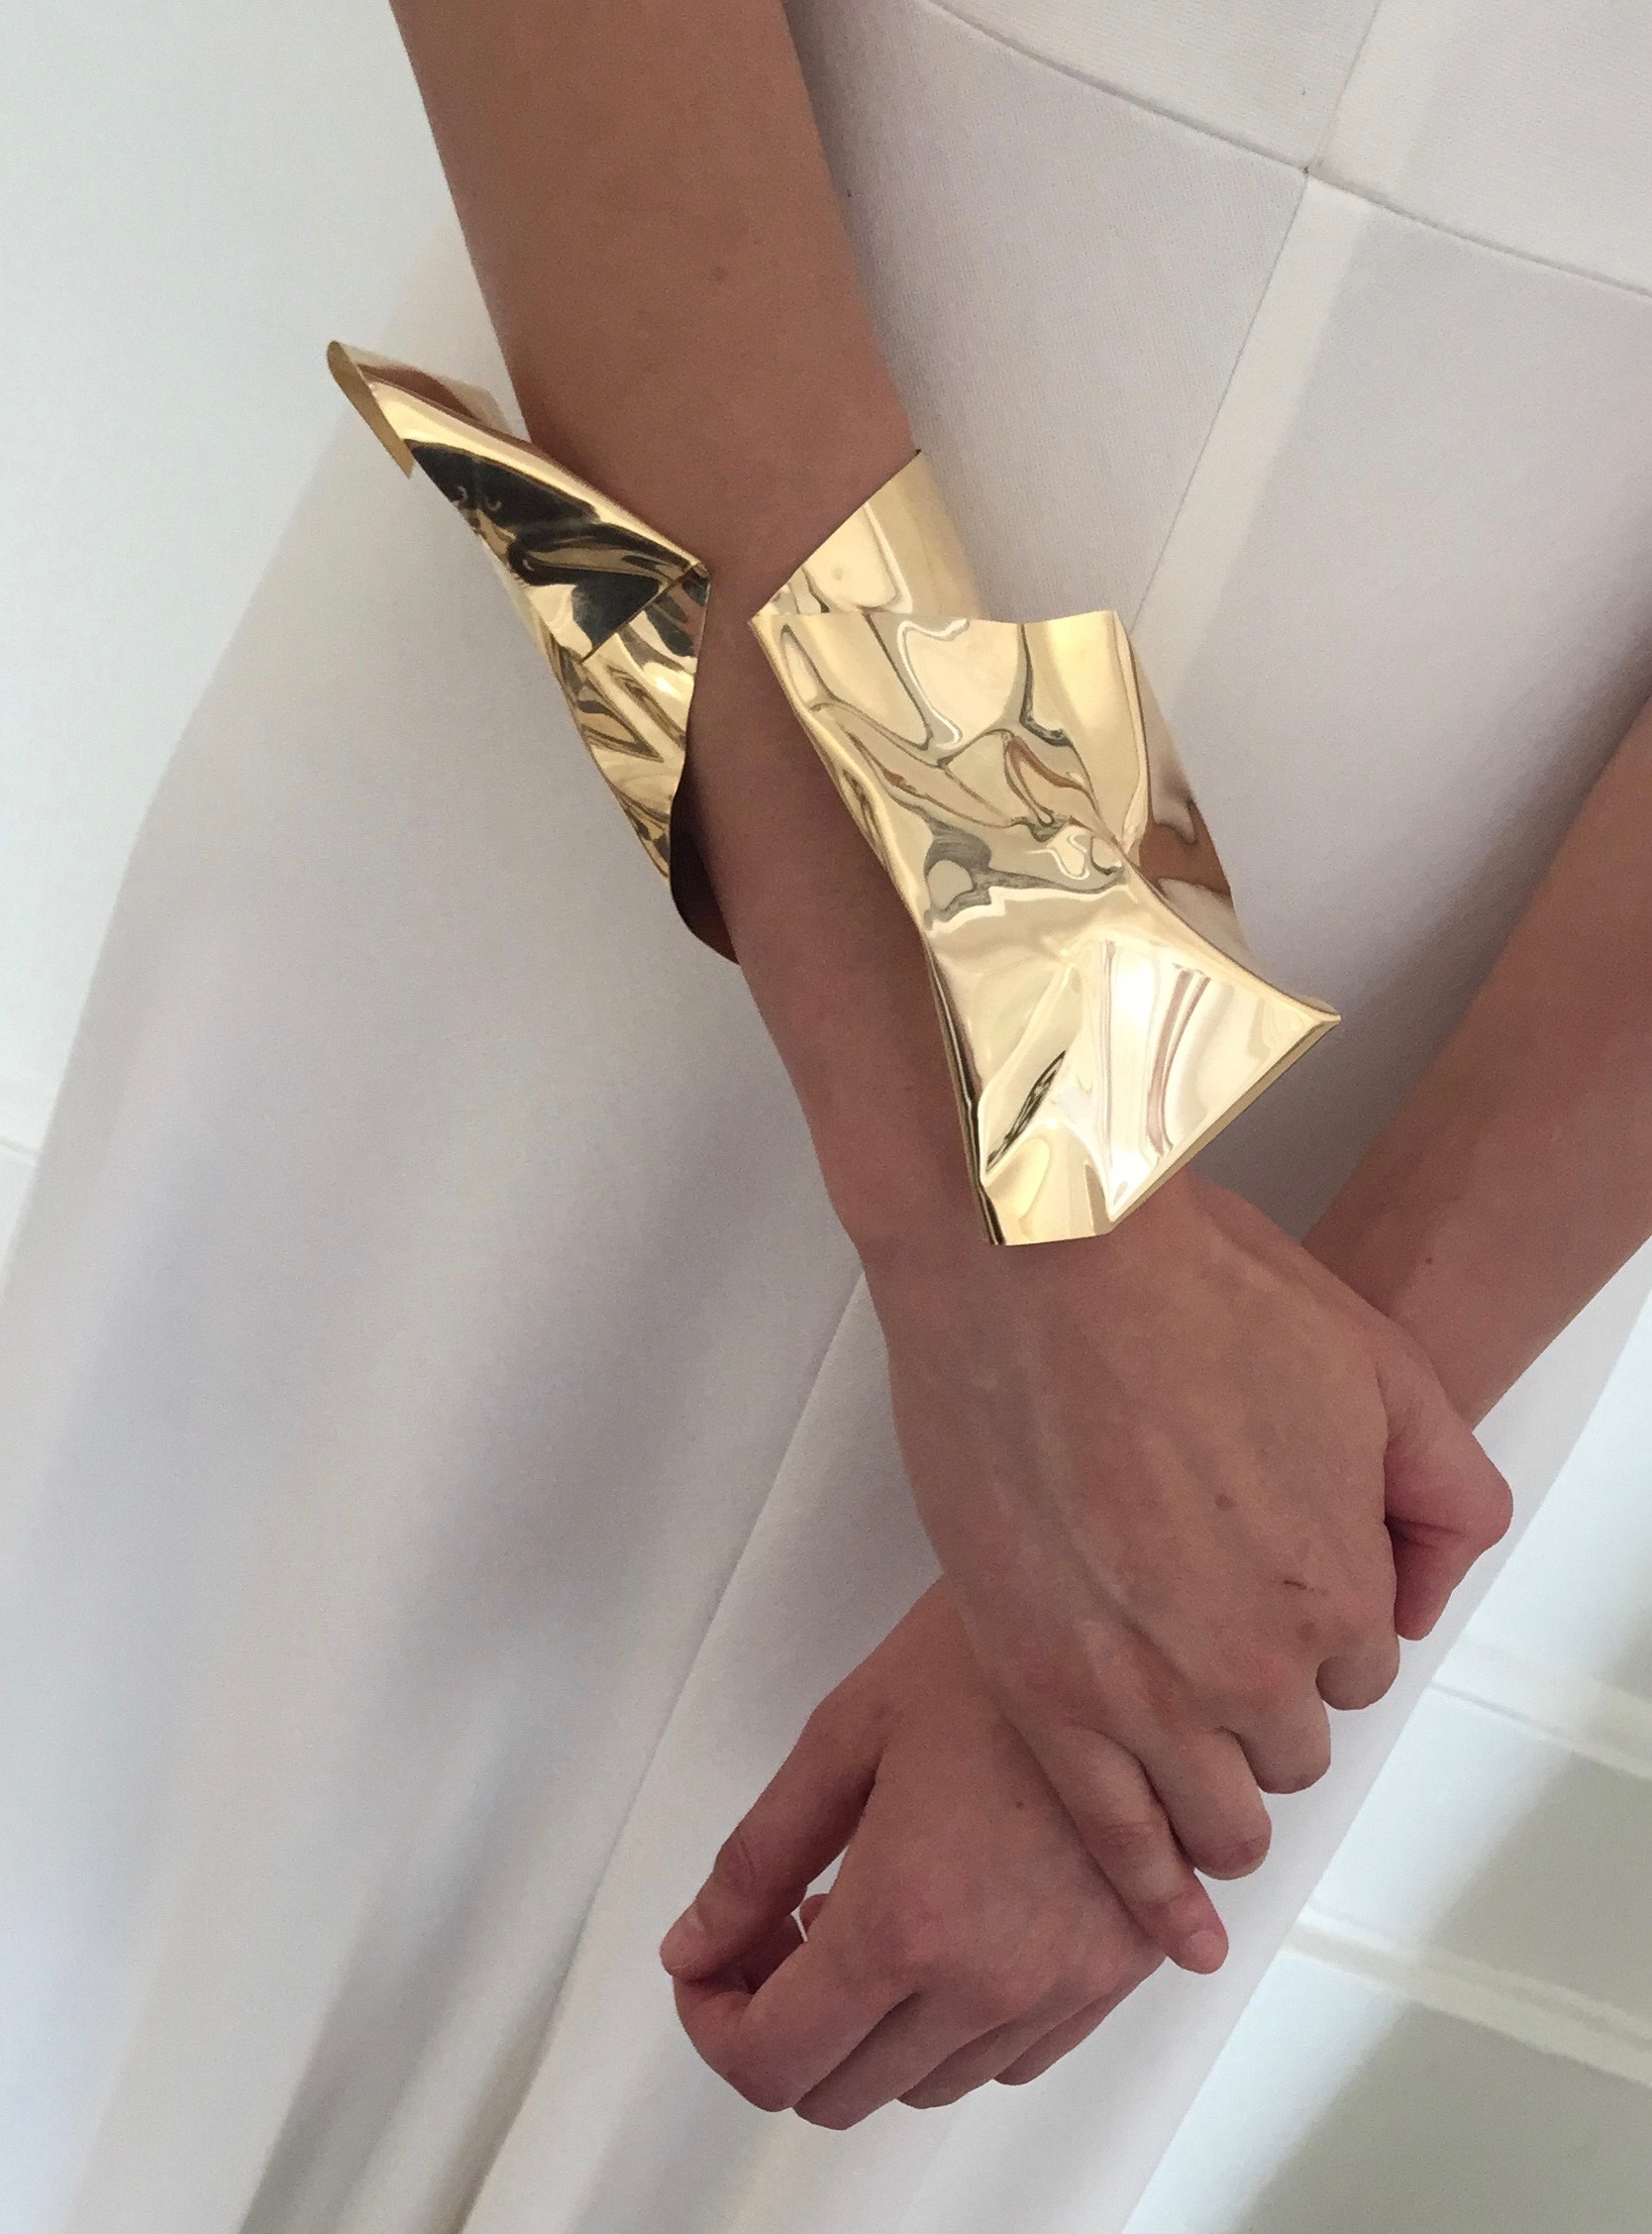 Ana Khouri bracelet inspired by her sculpture. Photo Marion Fasel